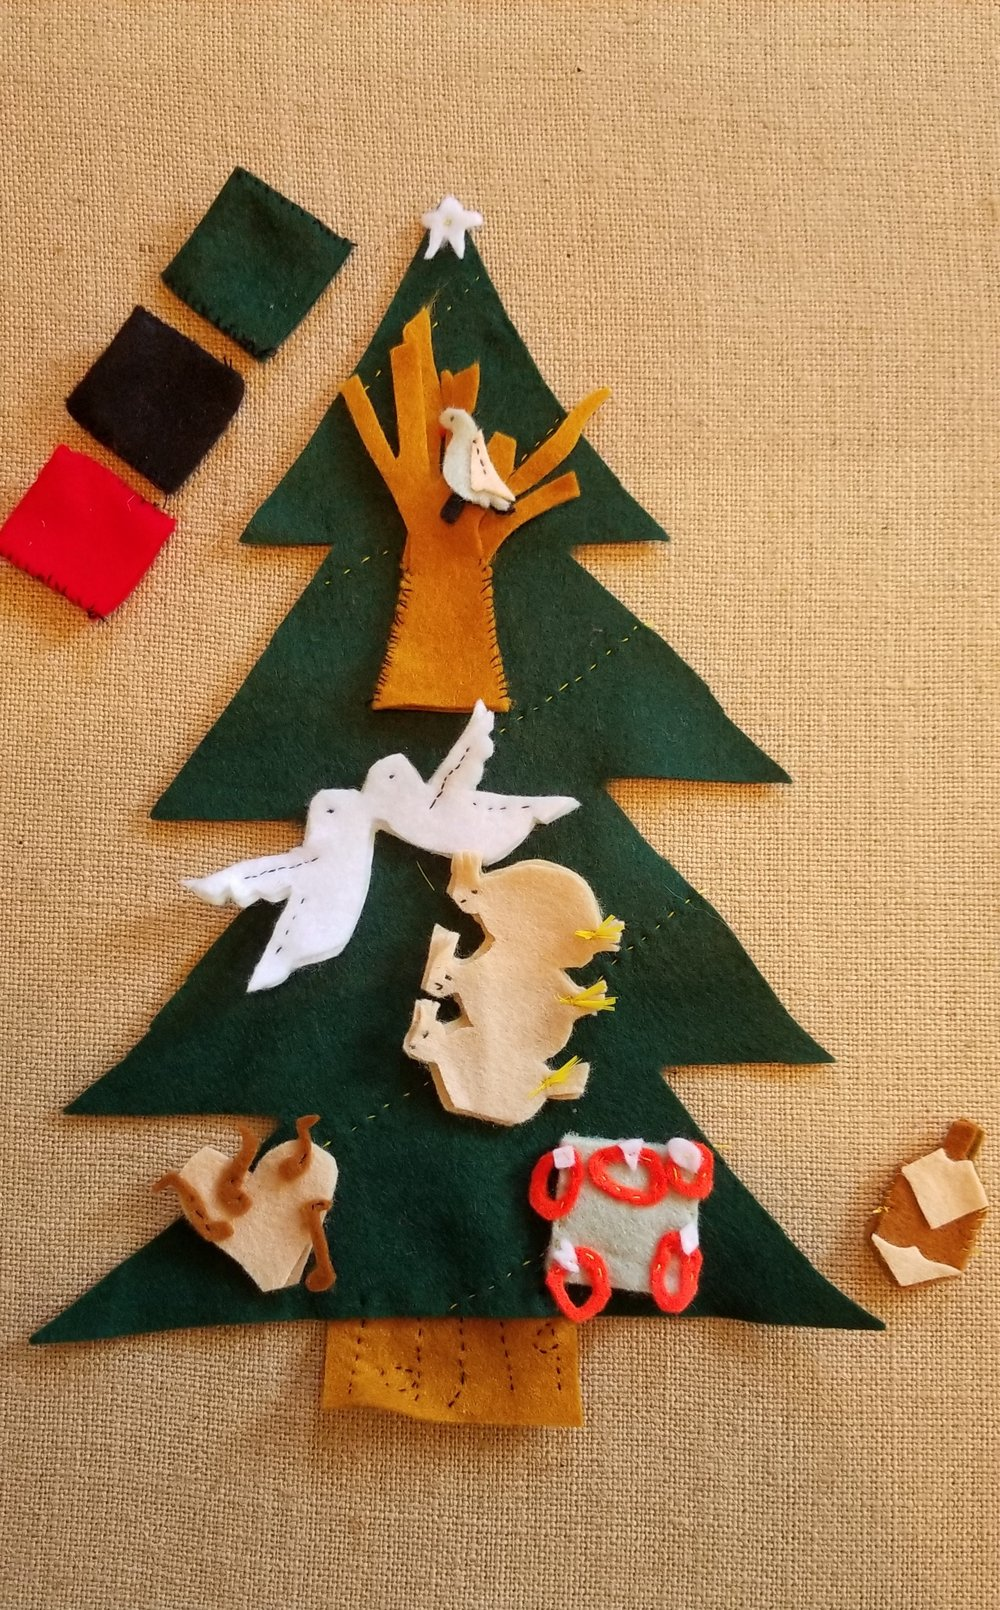 Our Felt Finger Puppets Buy Here:  5 Days of Christmas